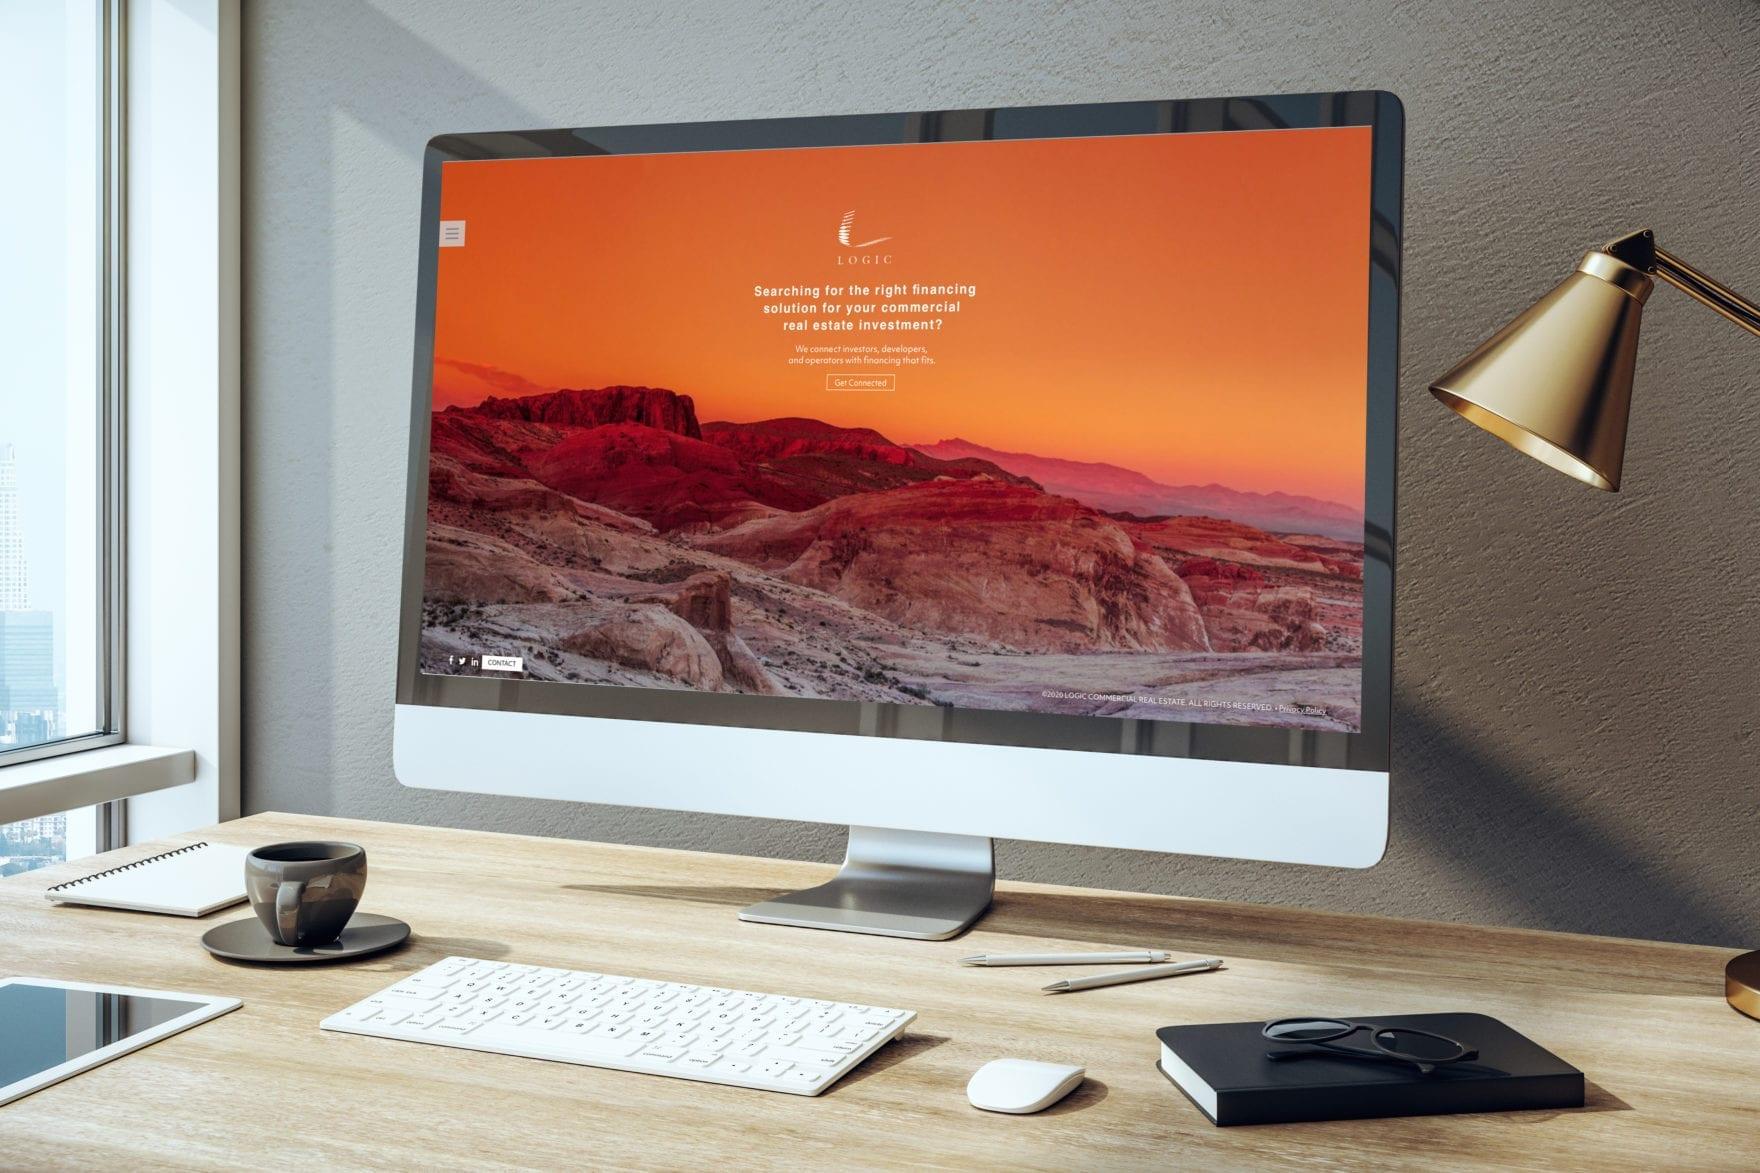 An iMac computer displaying the Logic website, created by Canyon Creative